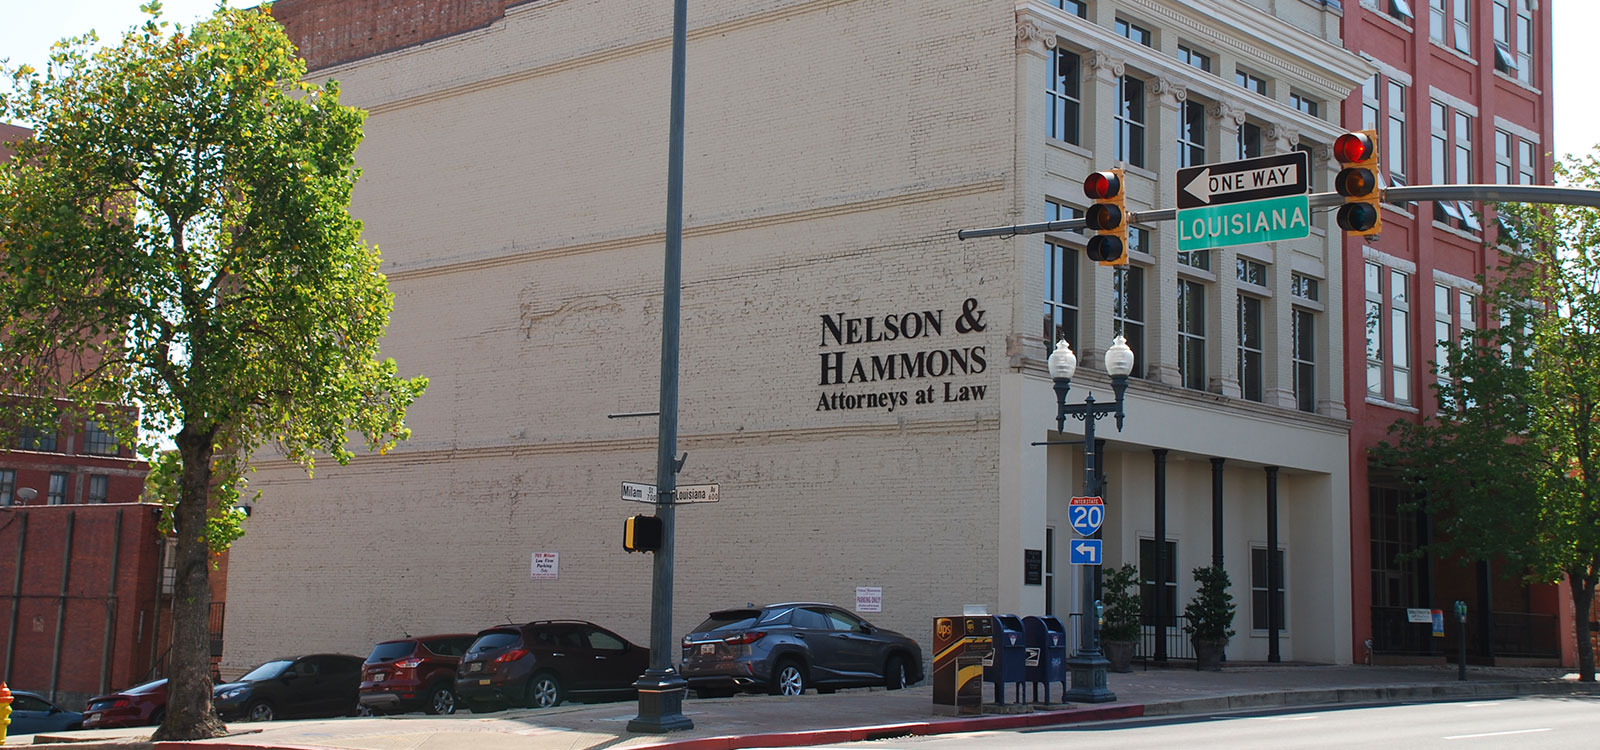 Medical Malpractice | Practice Areas | Nelson & Hammons Attorneys at Law